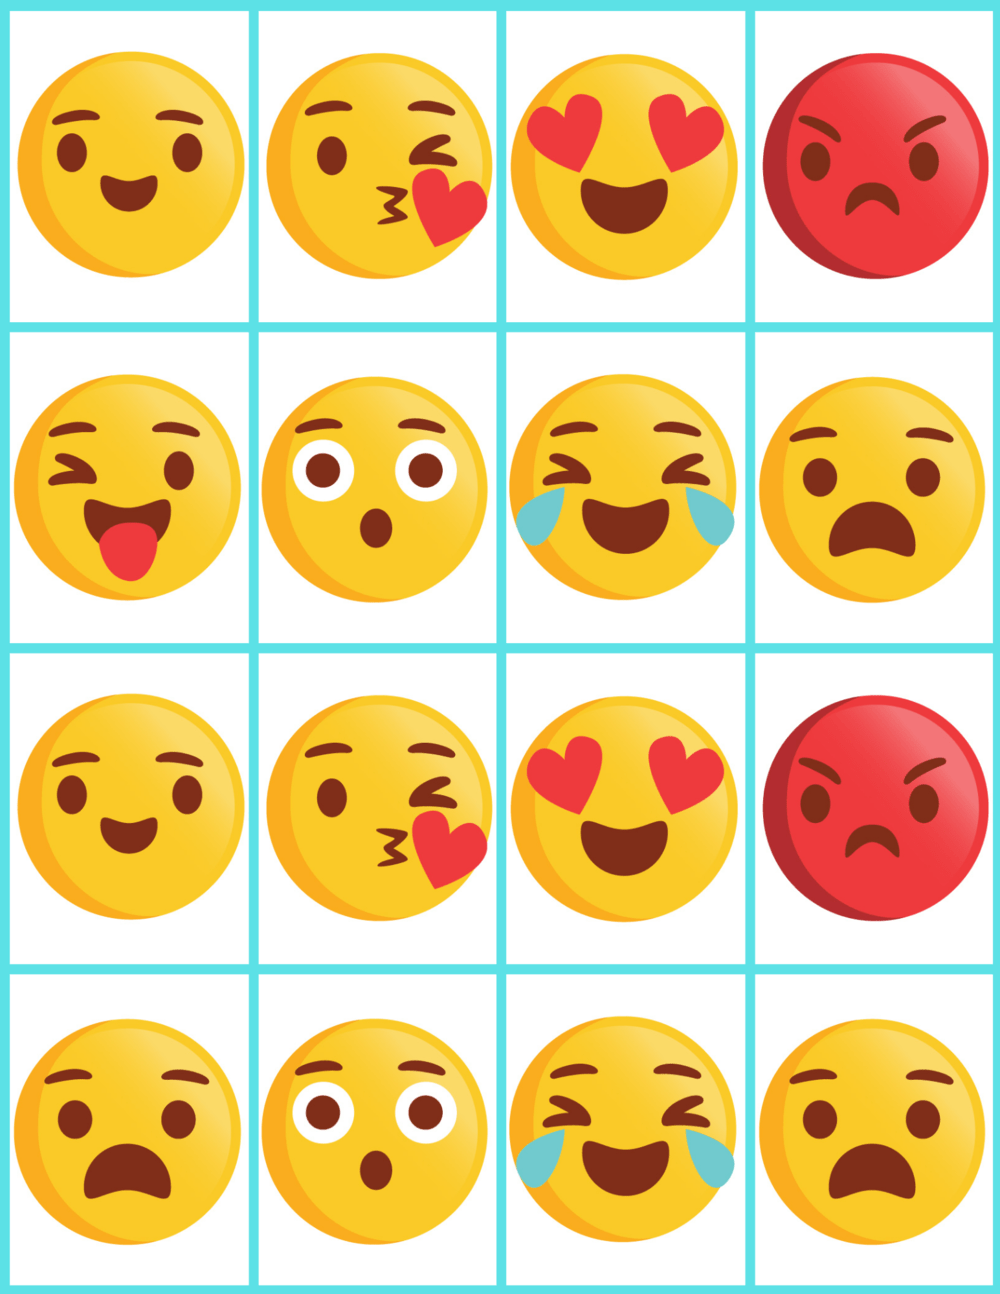 emoji faces memory cards with 8 faces